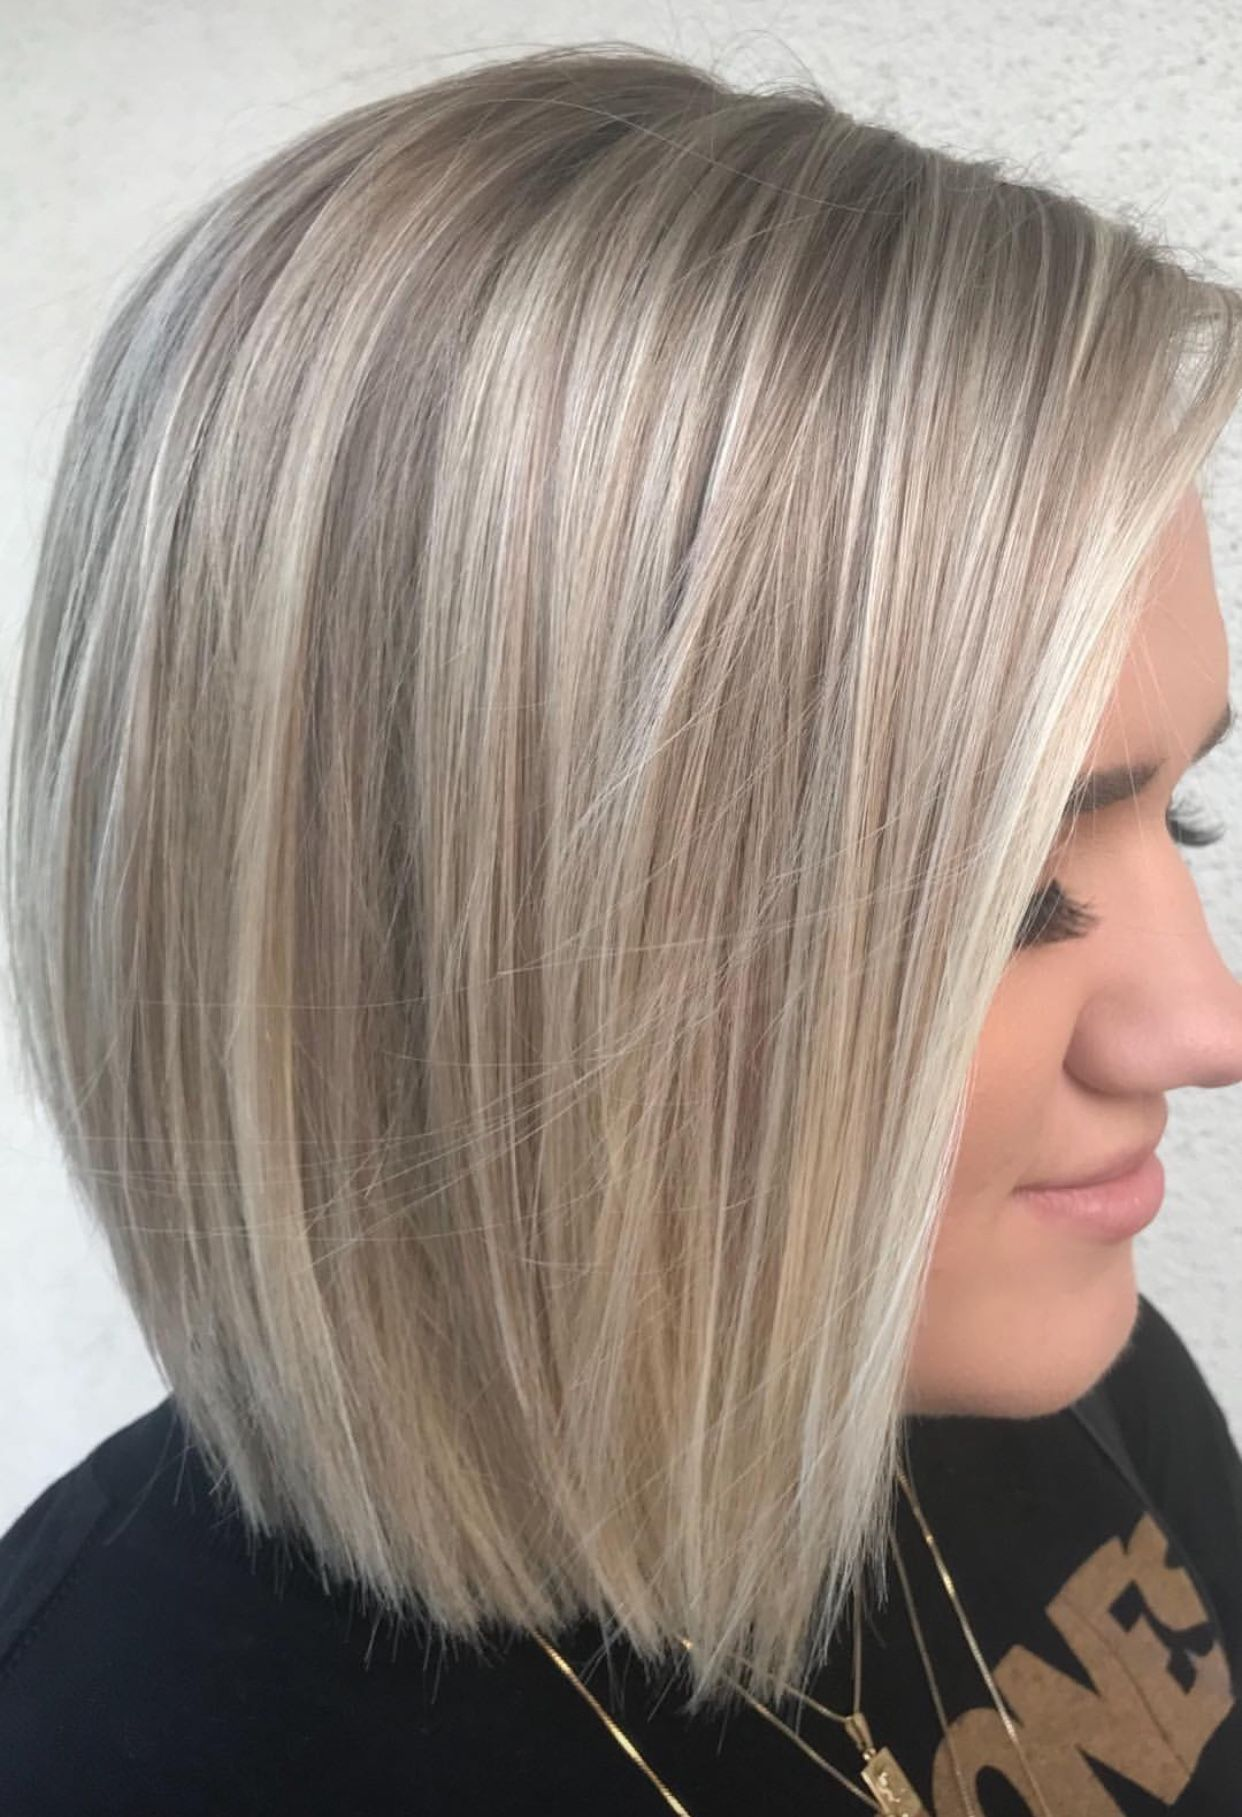 Pin by Vicki Ledger on HAIR in 10  Fall blonde hair, Short